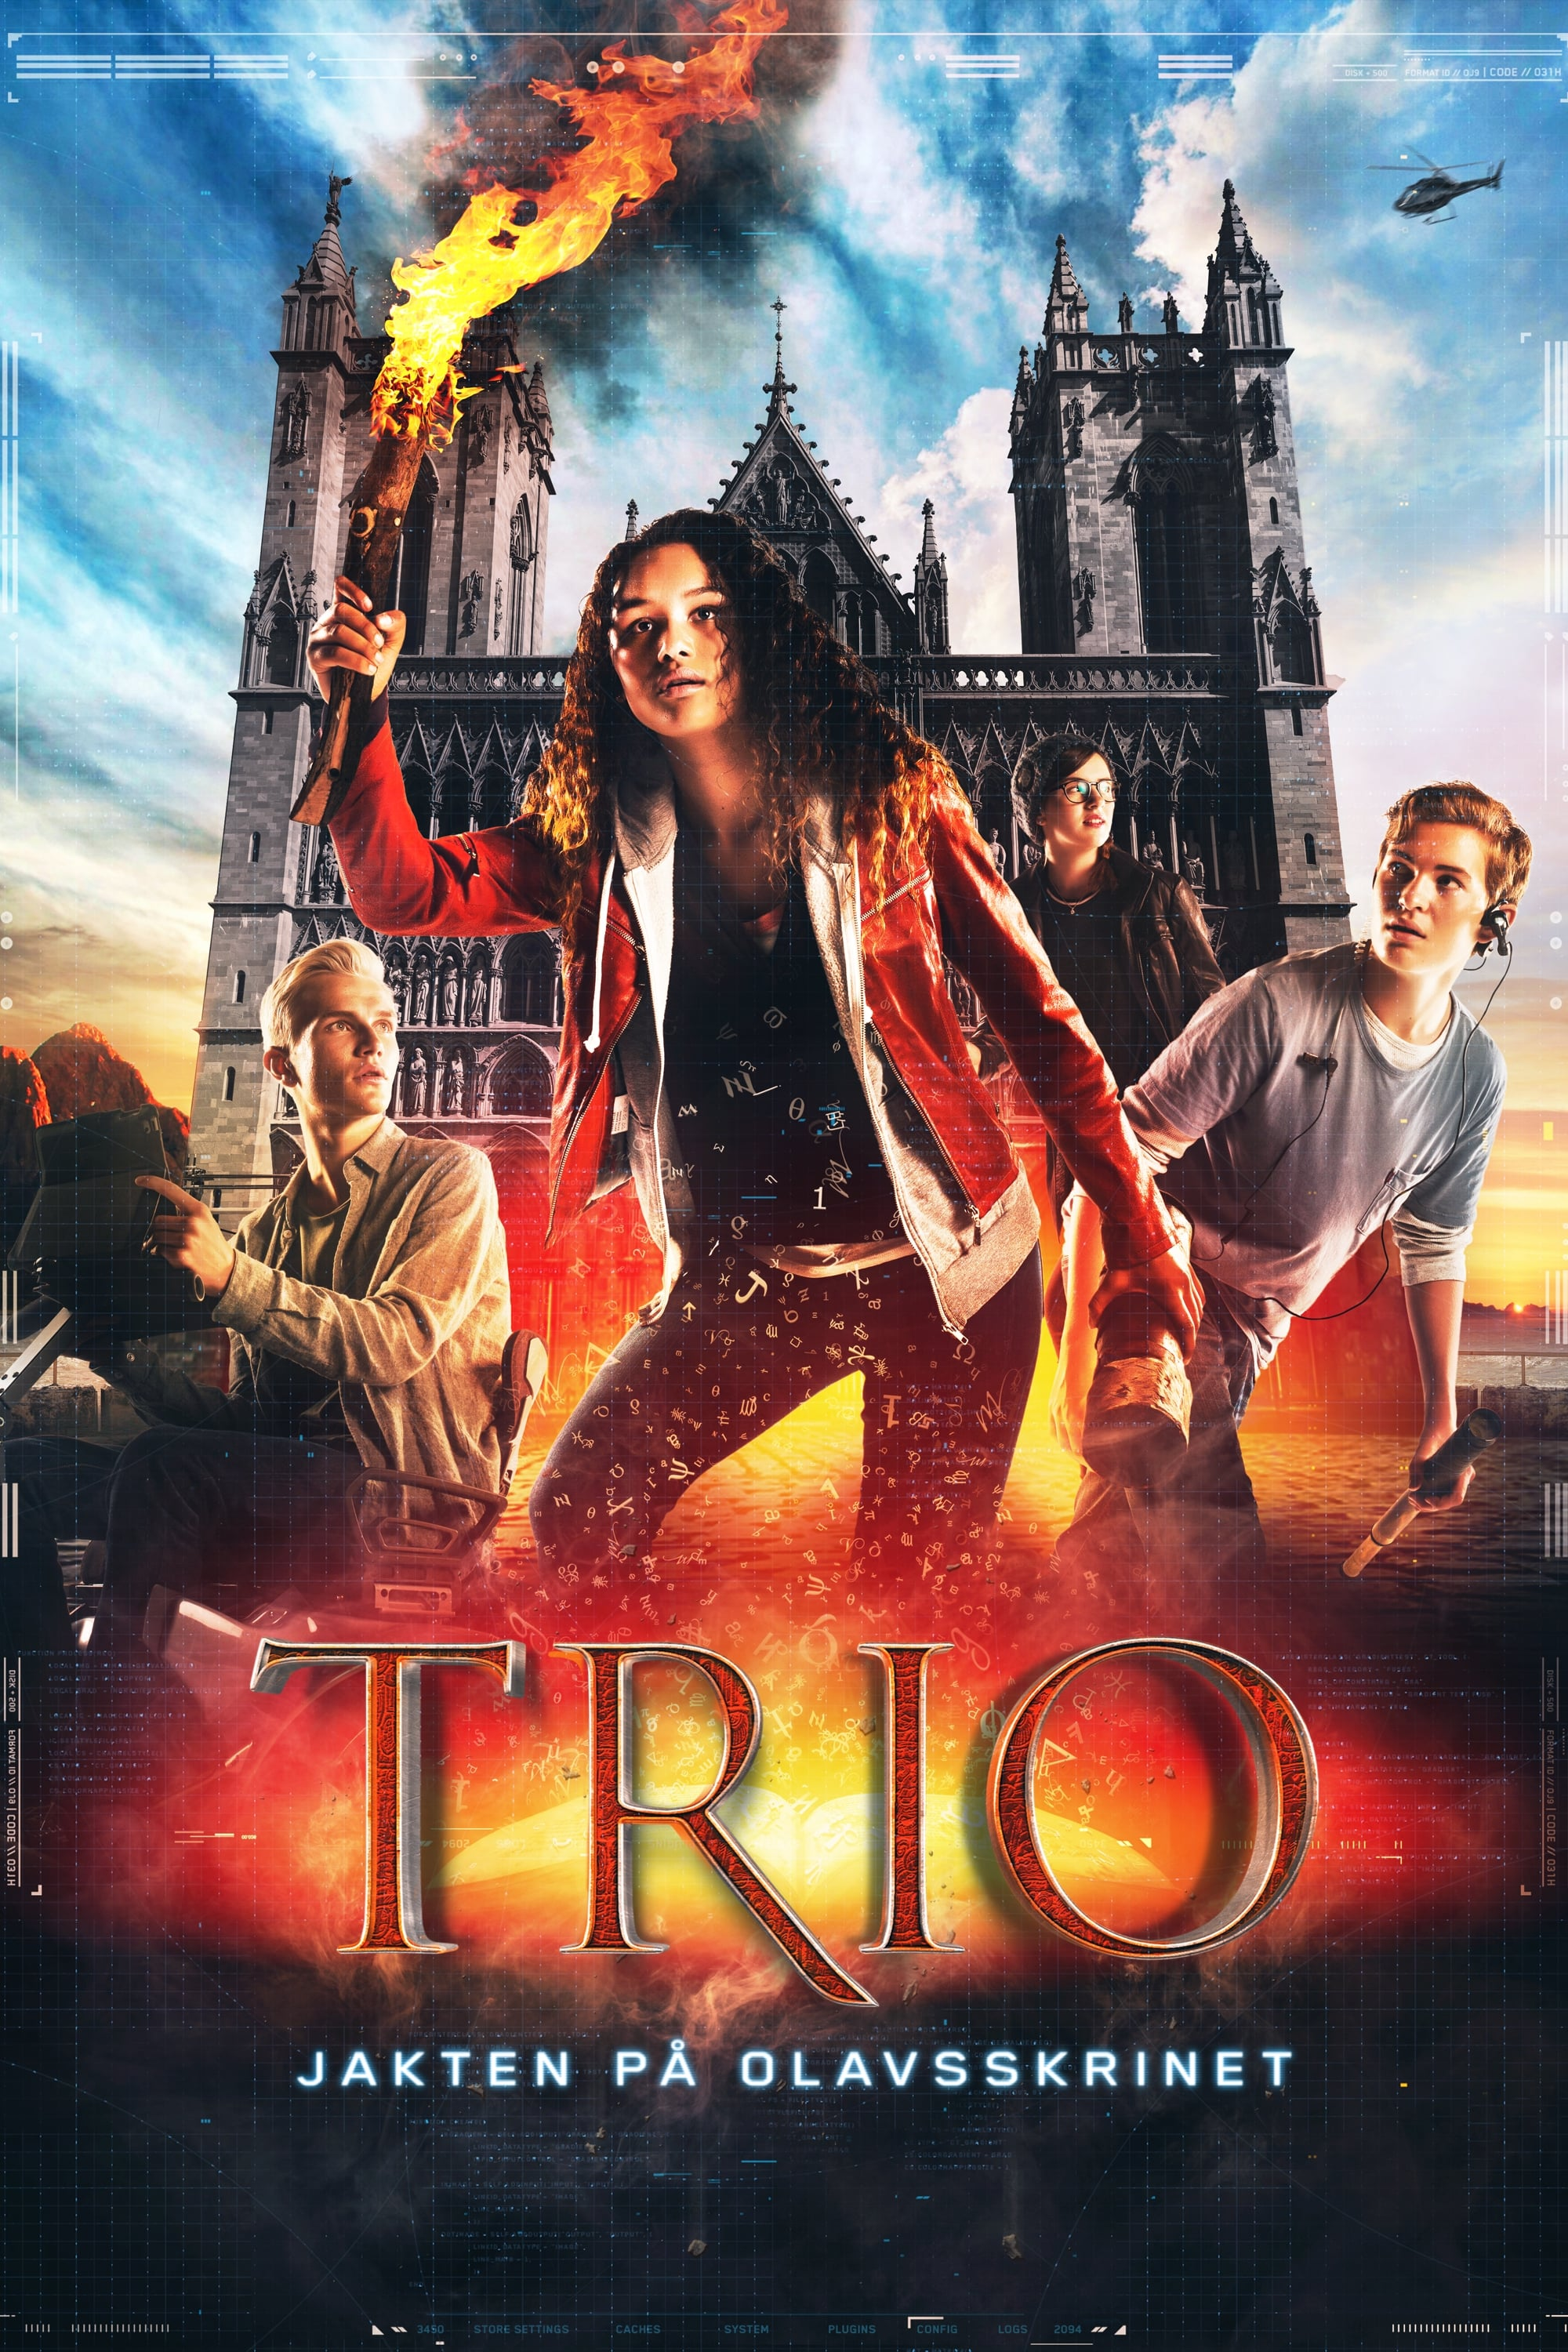 TRIO - The Hunt for the Holy Shrine